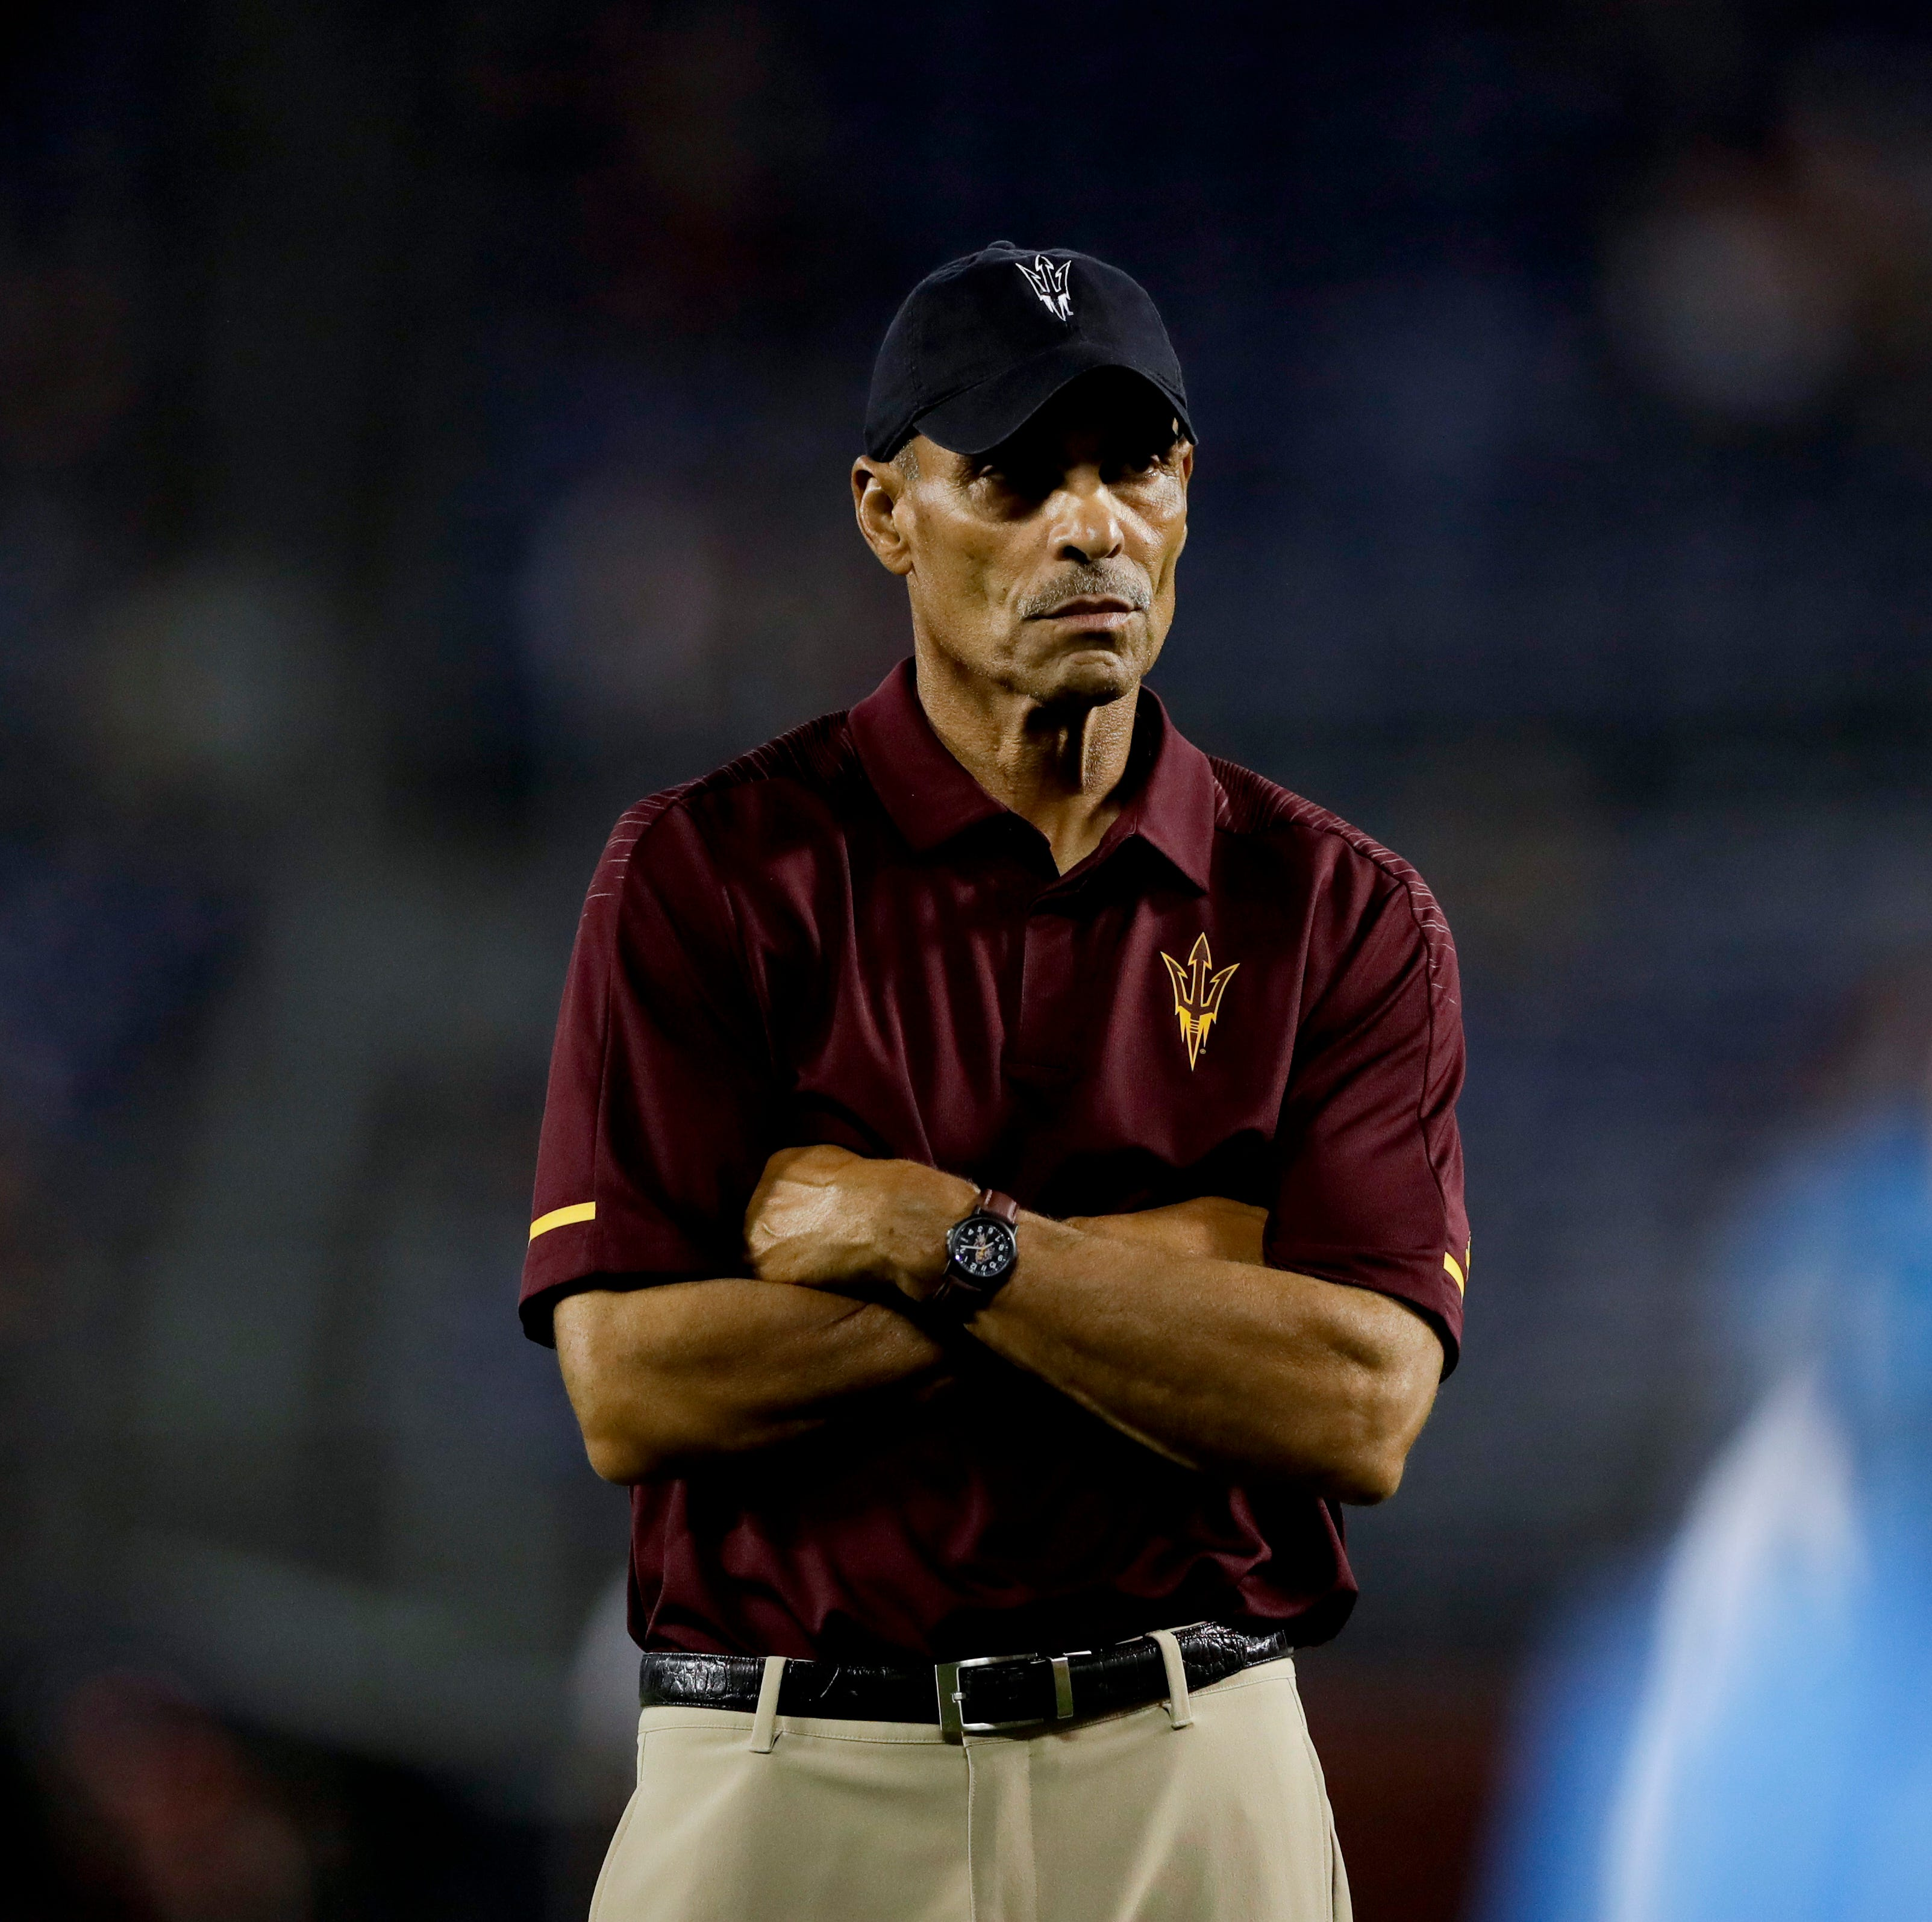 Herm Edwards after ASU's loss: 'When you go on the road, you have to bring your own energy'